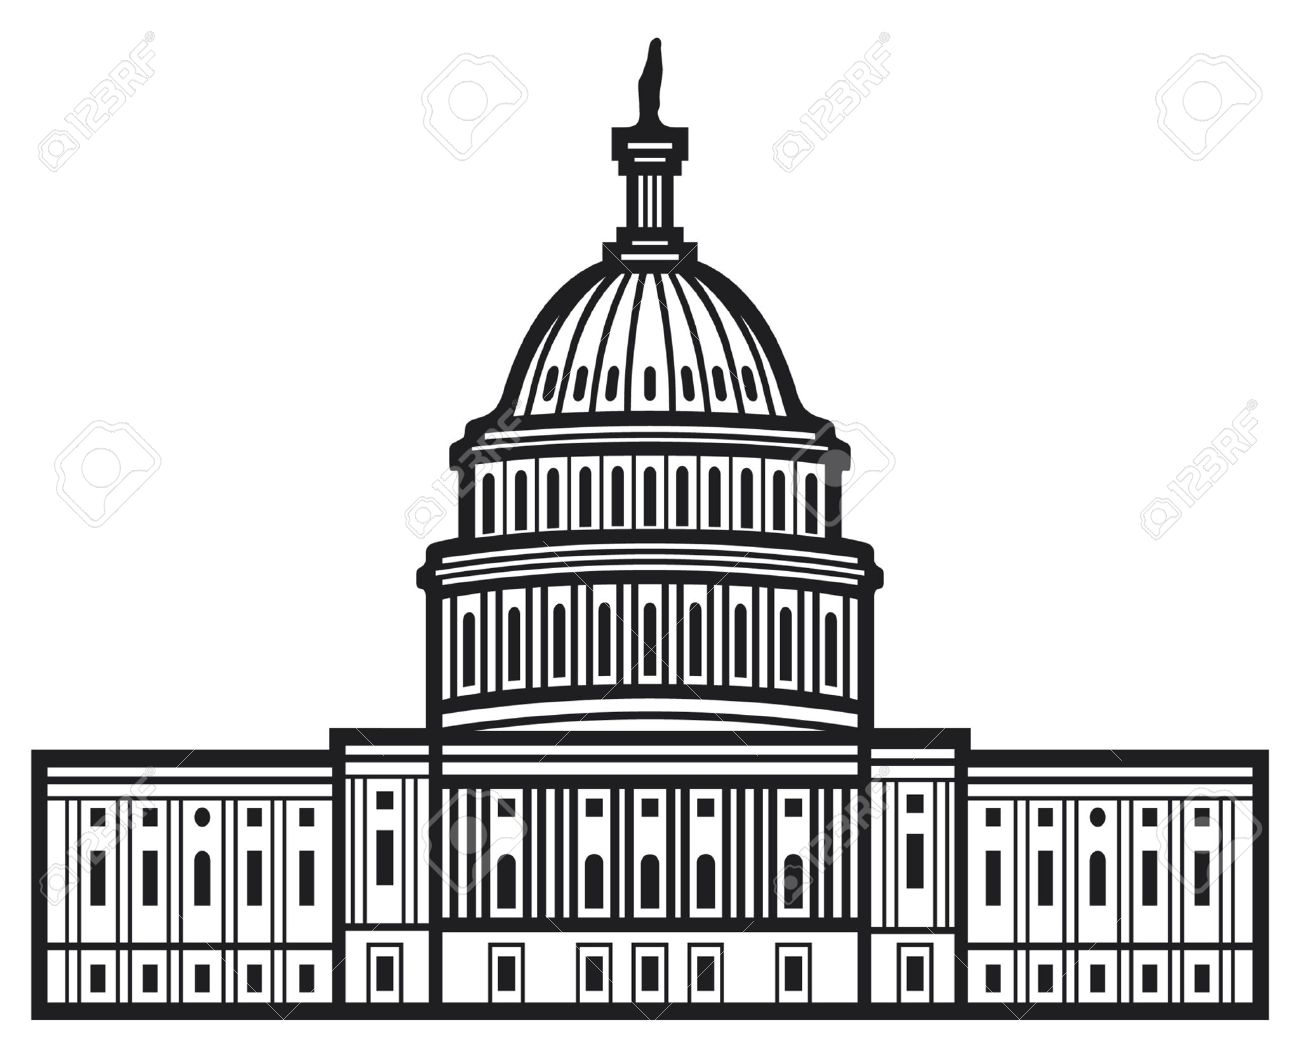 Capital Clip Art-Capital Clip Art-5